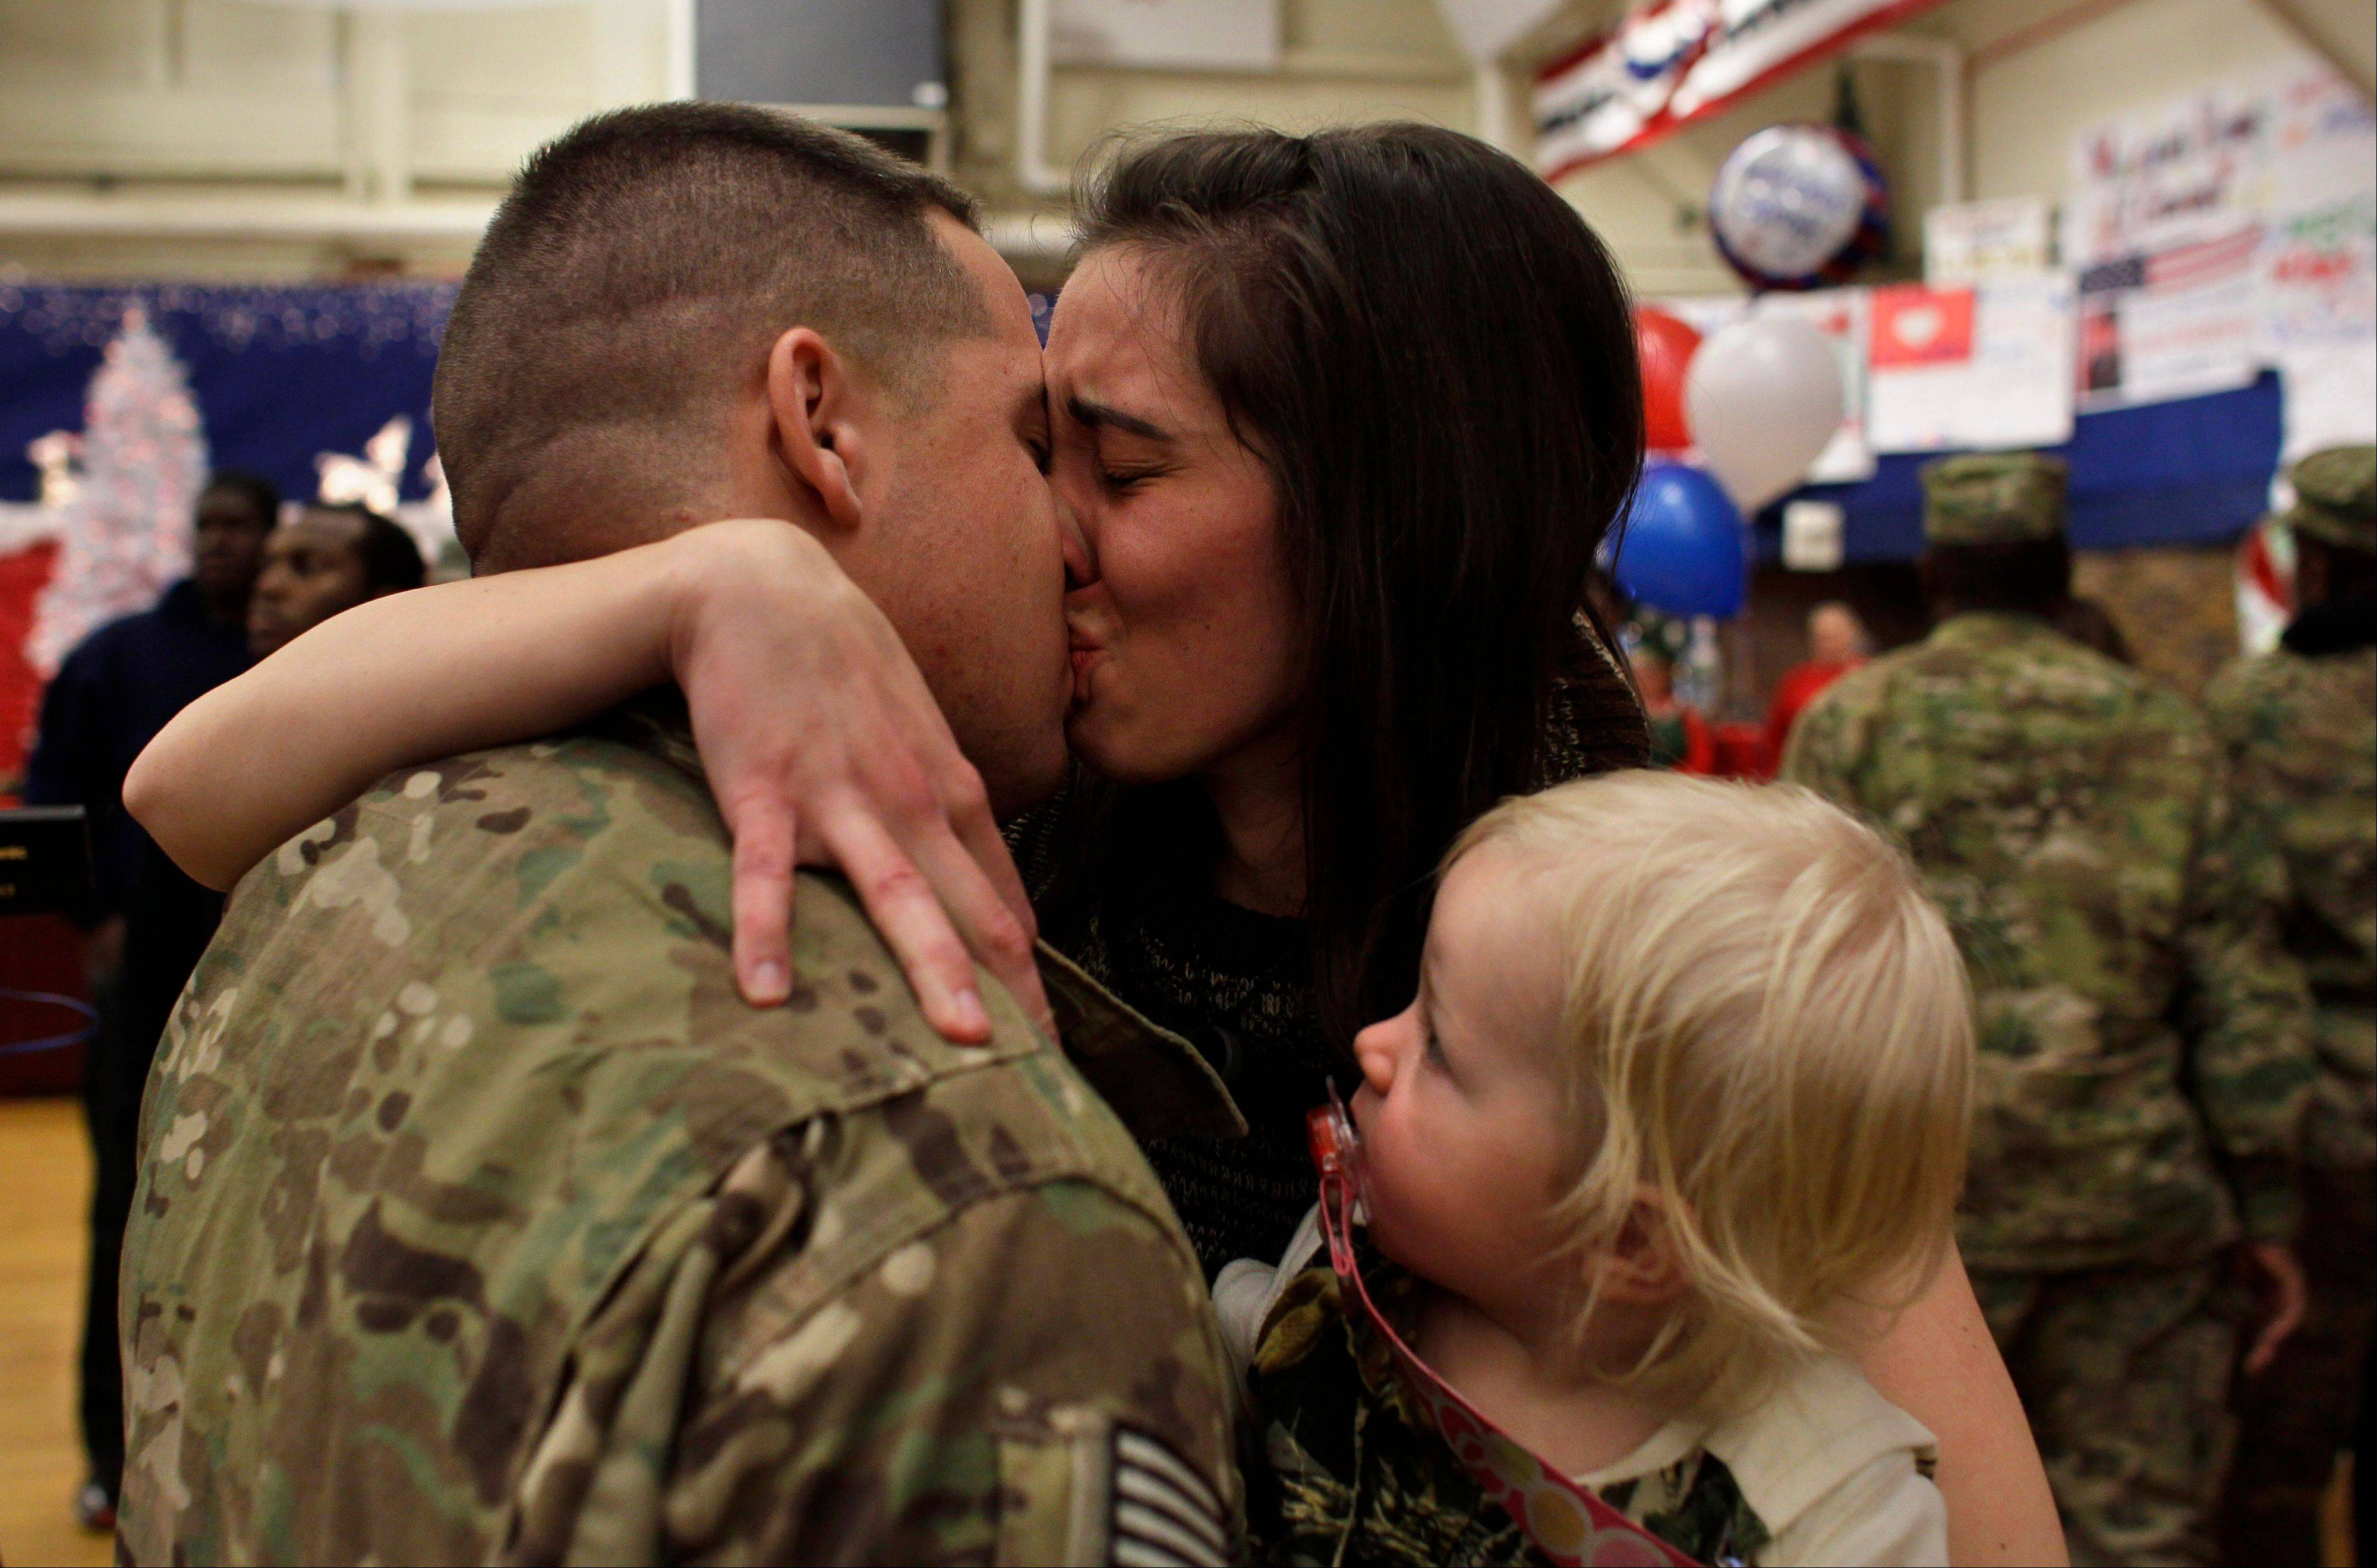 U.S. Army 1st Lt. Aaron Dunn kisses his wife, Leanne, holding their baby Emma, age 14 months, as they reunite during an arrival ceremony for soldiers returning from a deployment in Afghanistan at Ft. Carson, in Colorado Springs, Colo.